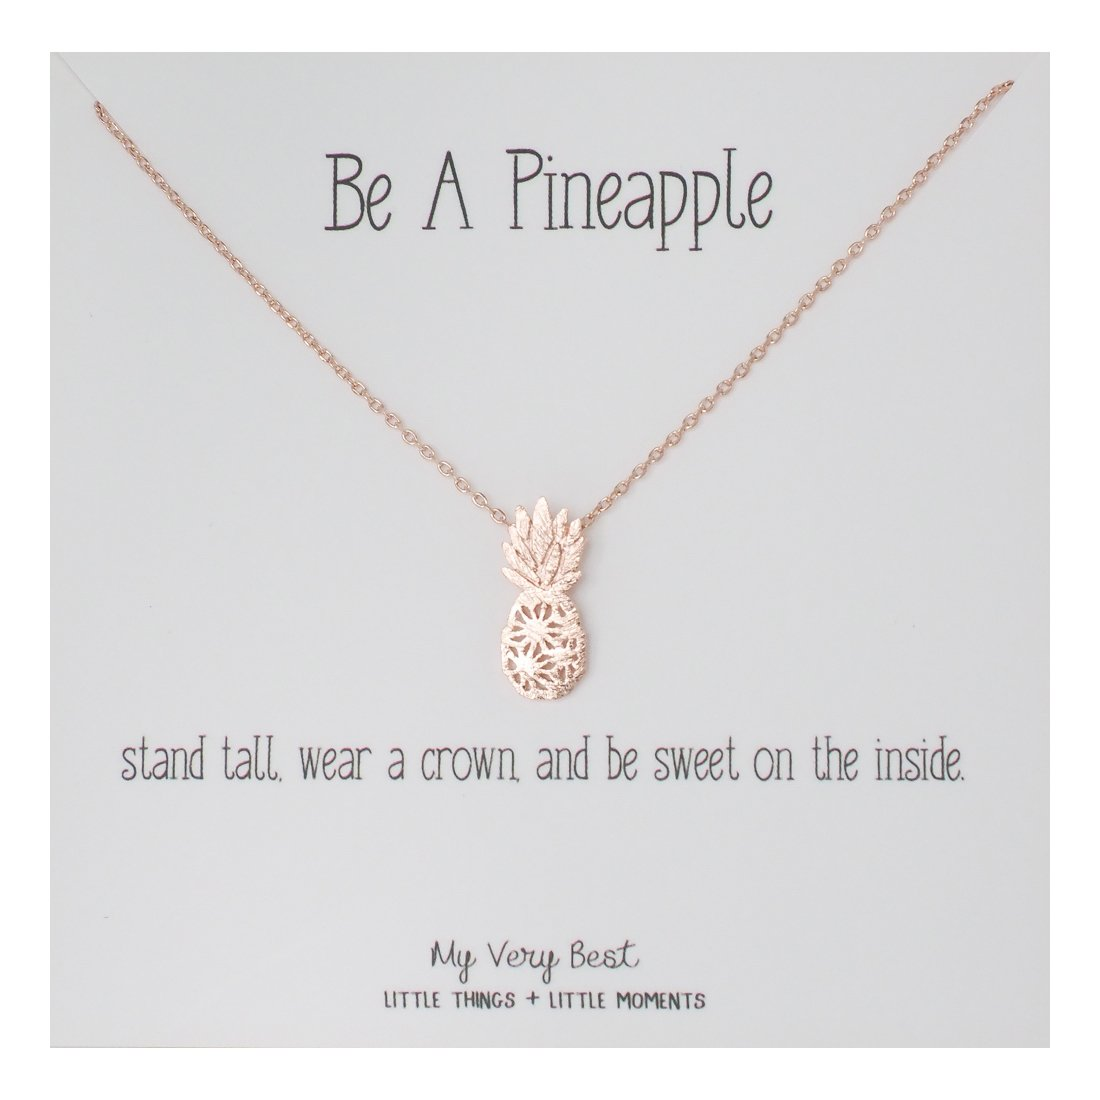 My Very Best Dainty Pineapple Necklace Be A Pineapple_stand tall. wear a crown, and be sweet on the inside. (rose gold plated brass)